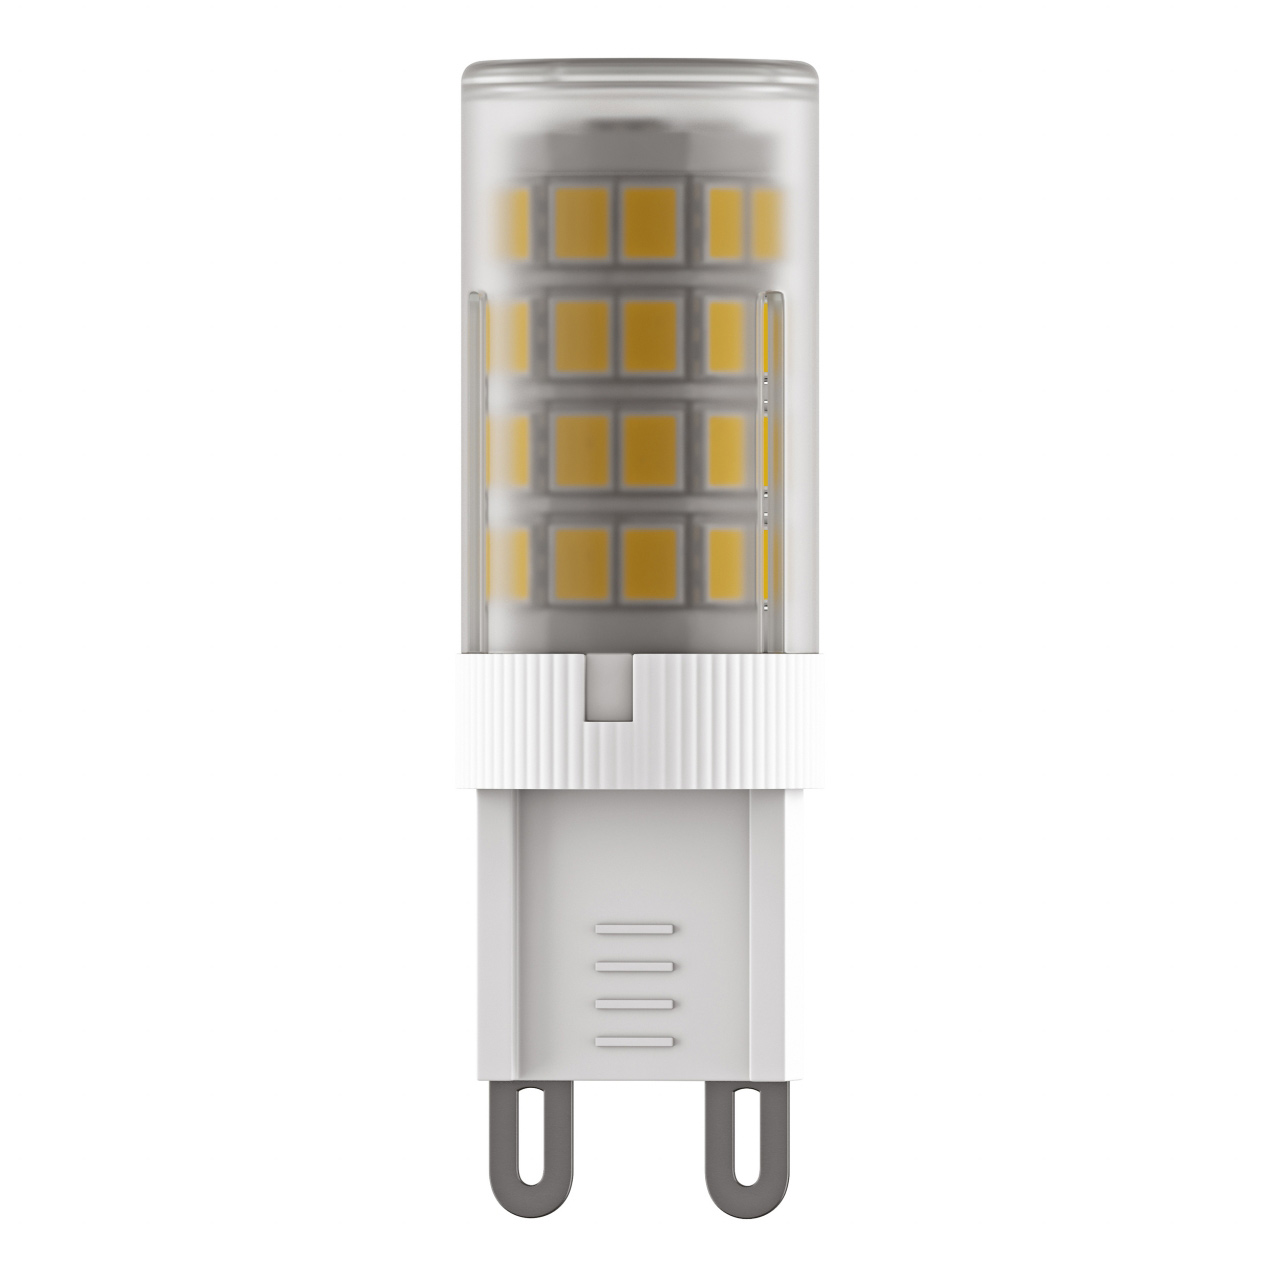 Лампа LED 220V JC G9 6W=60W 492LM 360G FR 4000K 20000H Lightstar 940464